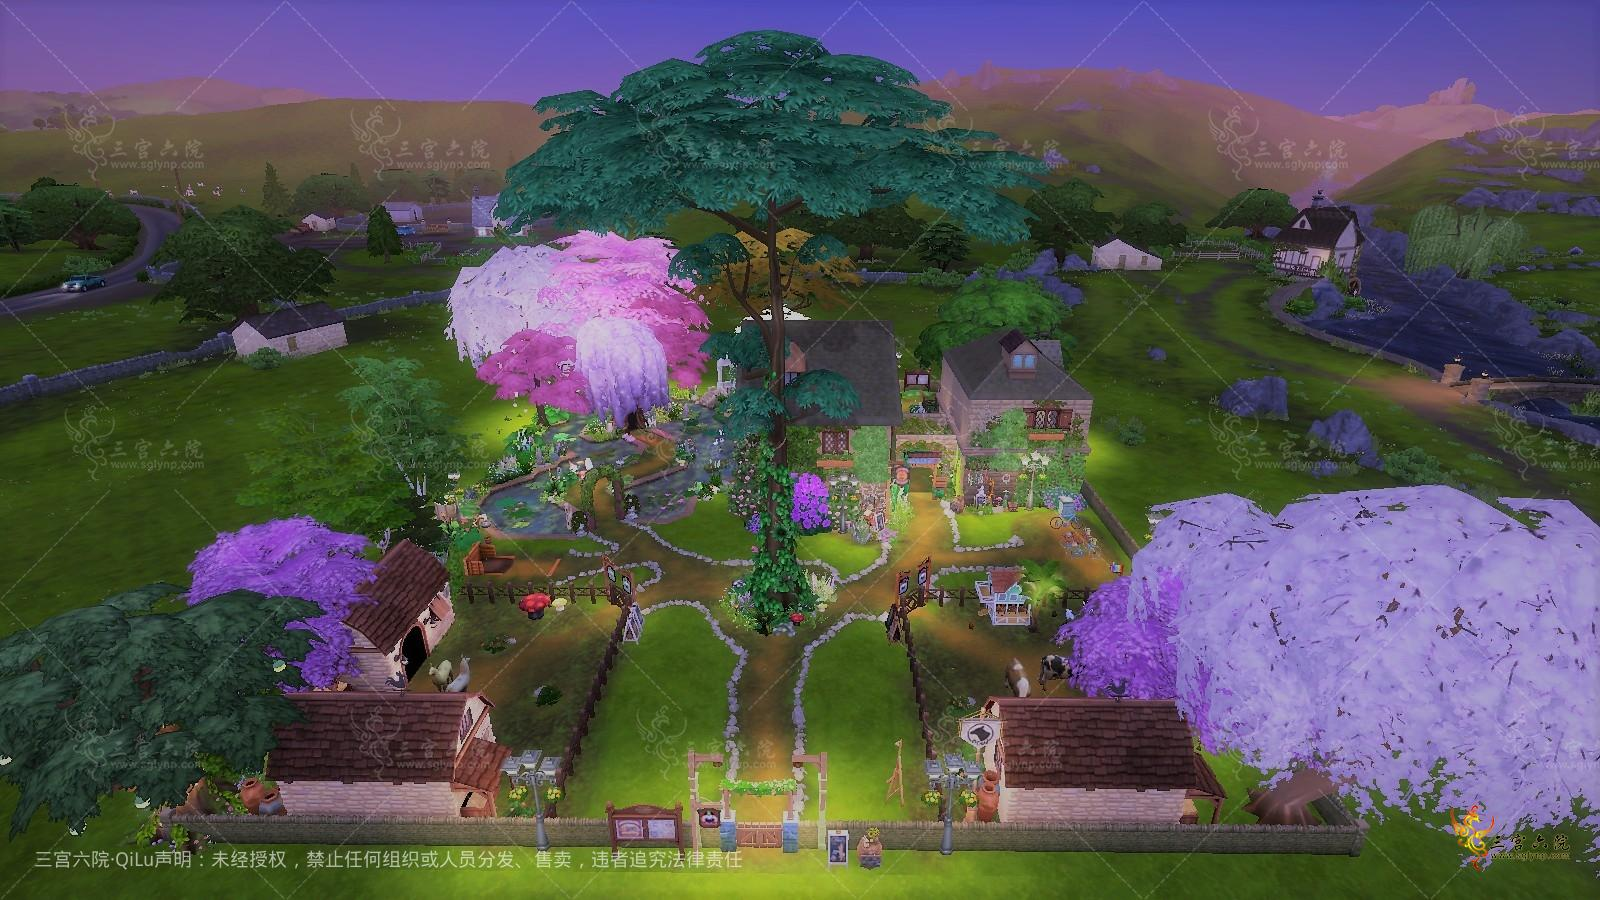 The Sims 4 2021_8_22 8_47_17 (2).png